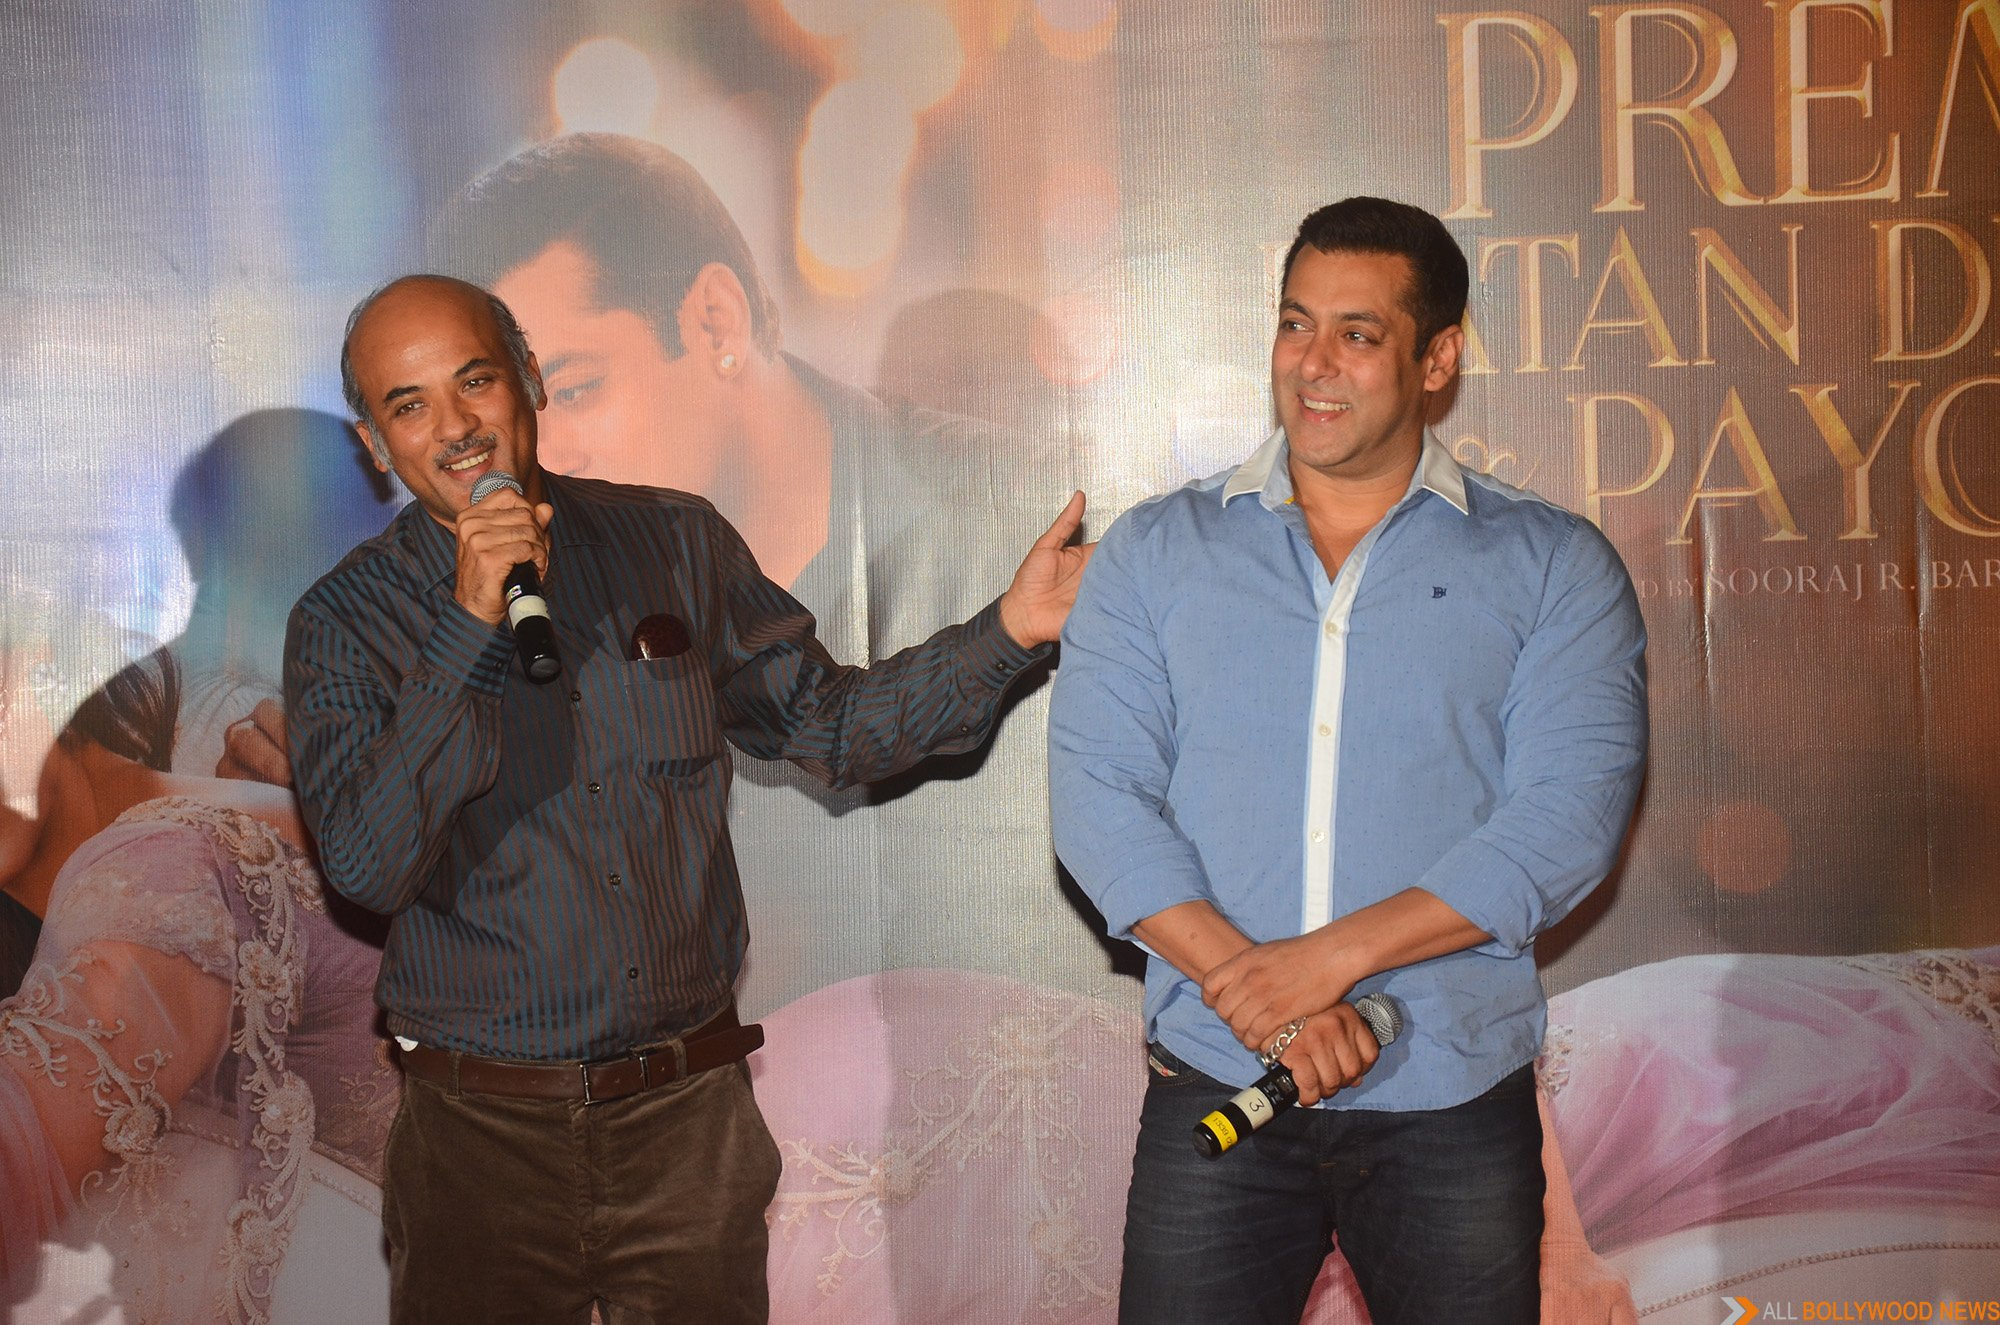 The trailer launch of film Prem Ratan Dhan Payo